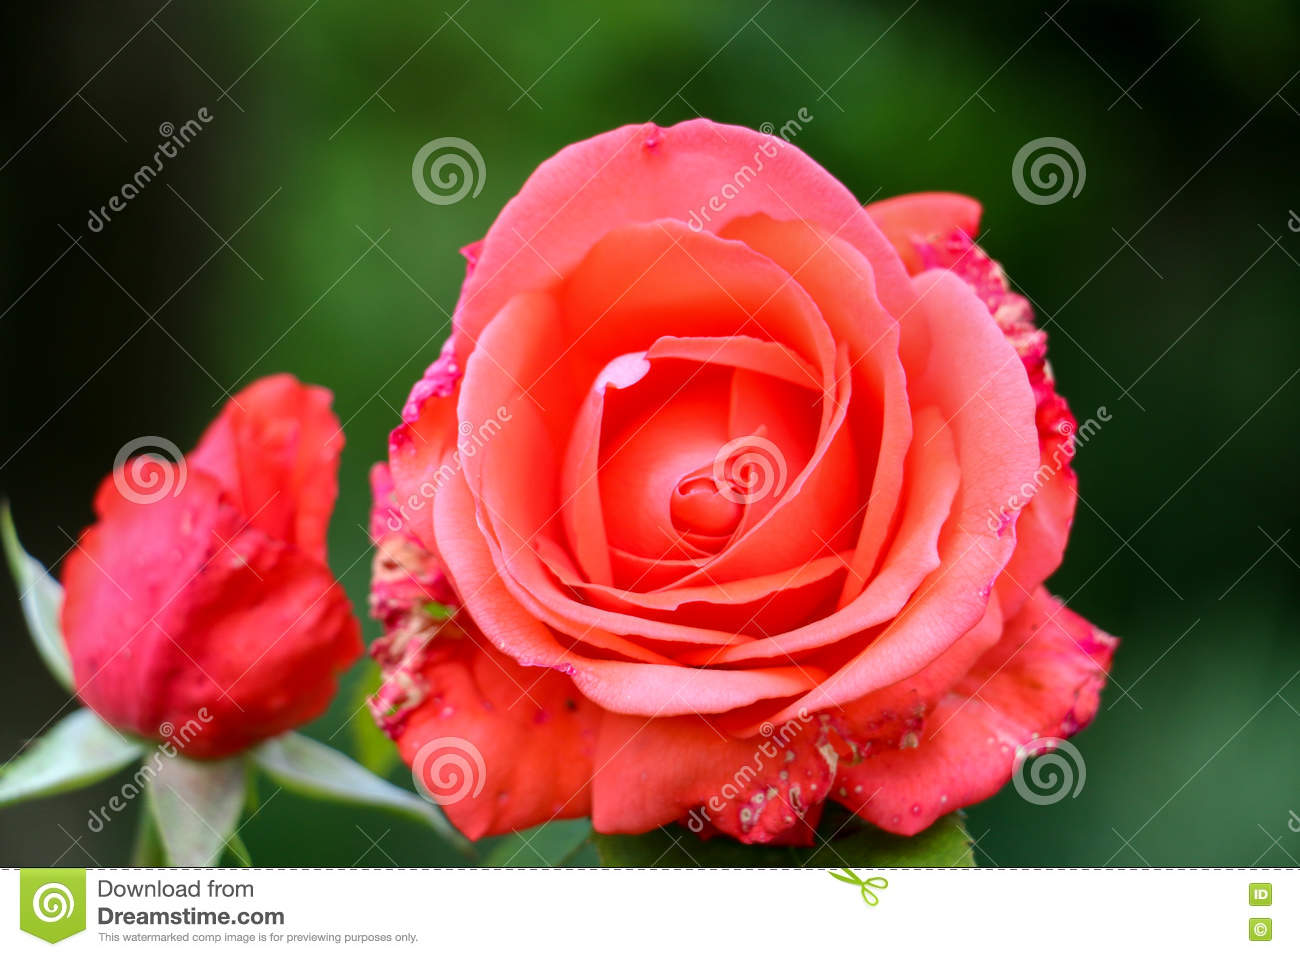 Sick Rose Flower In The Garden Stock Photo Image Of Complex Grow